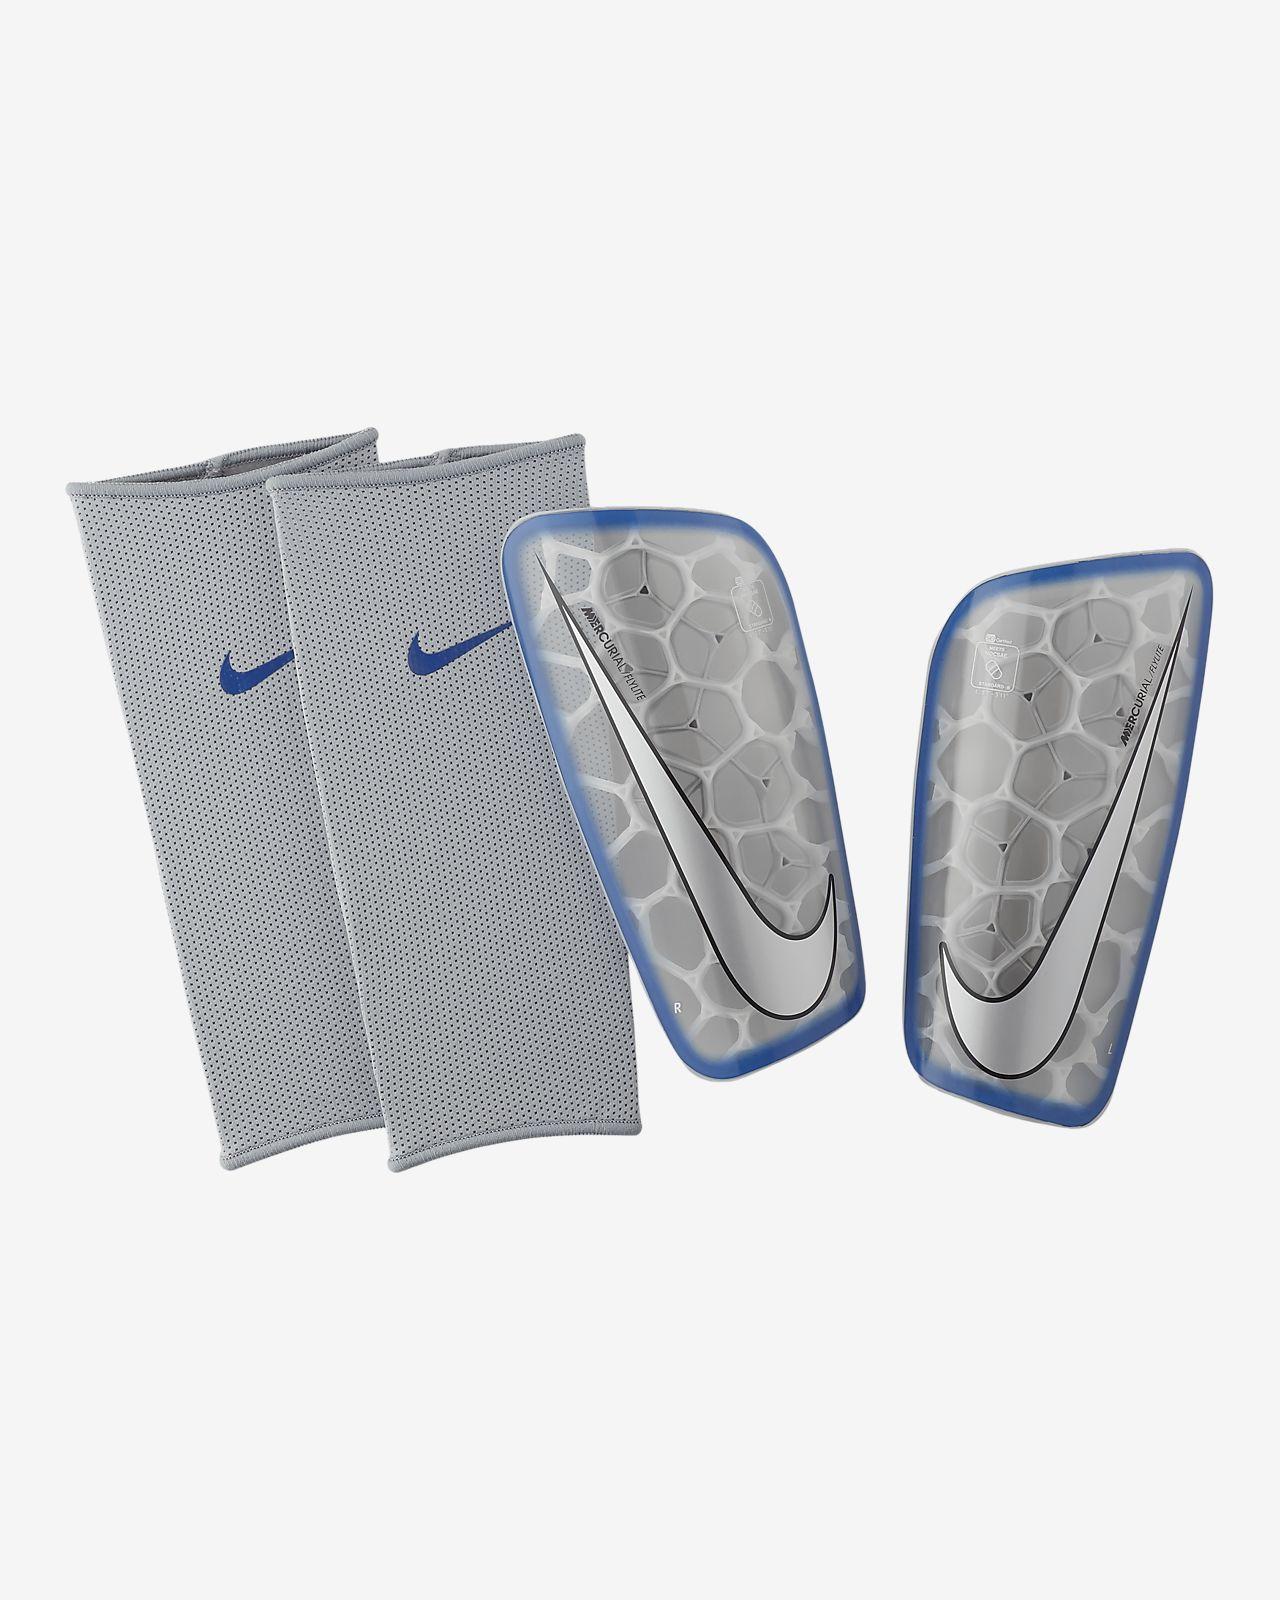 official latest discount good service Nike Mercurial Flylite Football Shinguards